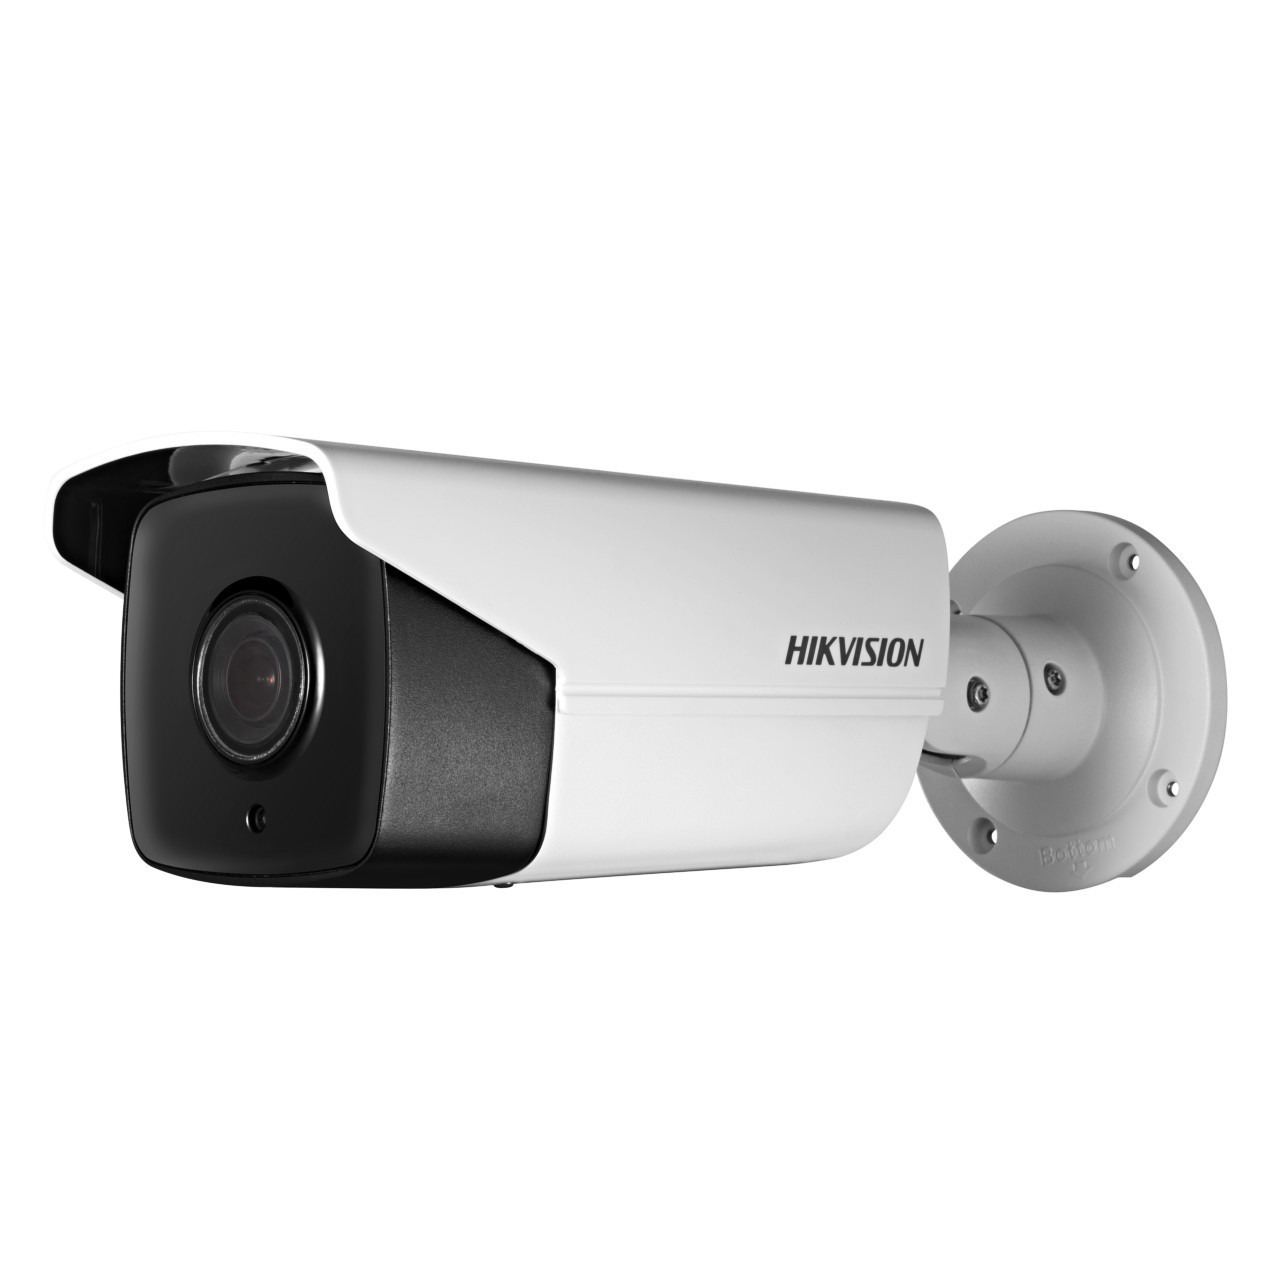 Hikvision DS-2CD2T35FWD-I5 3MP Ultra-Low Light H.265+ 1080P Exir 50M IR SD-Card POE Bullet IP Network Security Camera CCTV